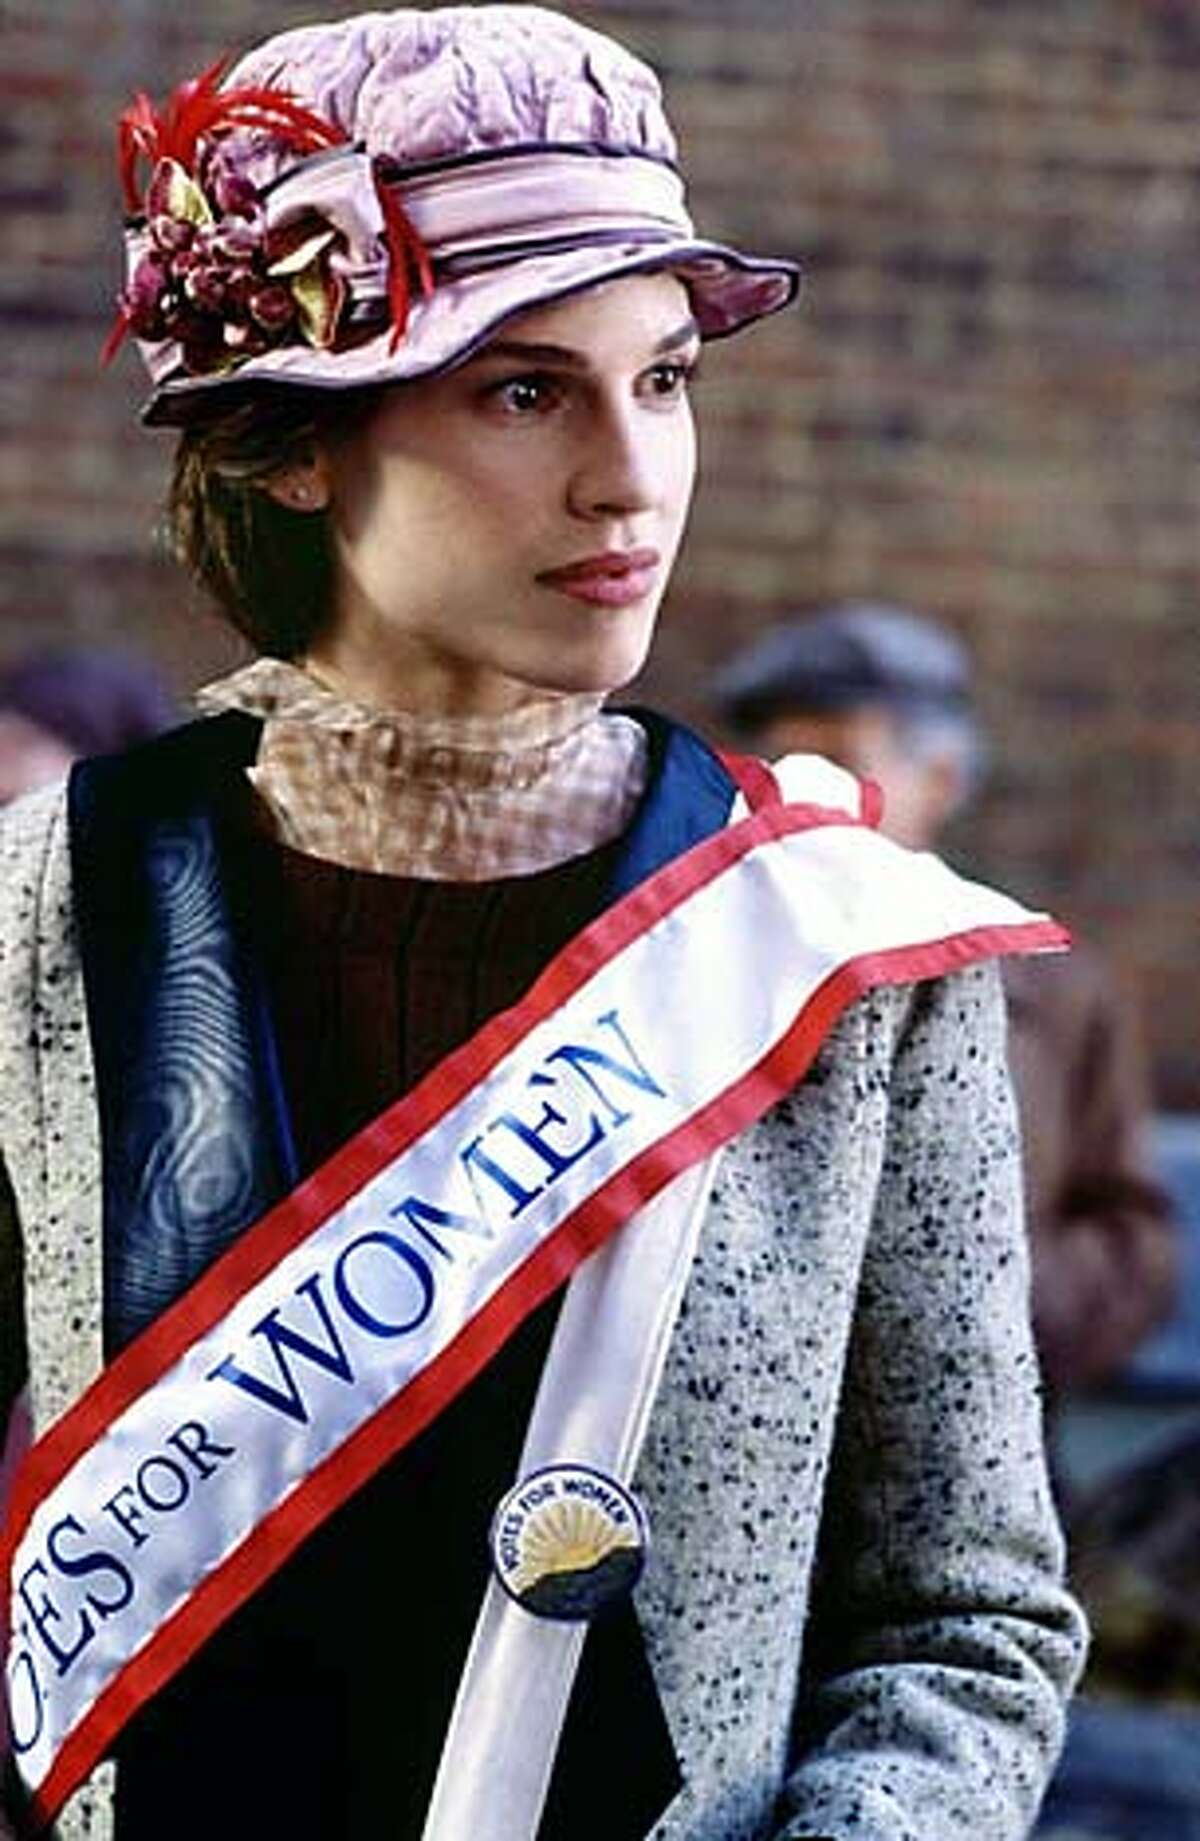 IRON15 IRON JAWED ANGELS: Hilary Swank. Living#Living#Chronicle#10/24/2004#ALL#Advance#F1#0421602095